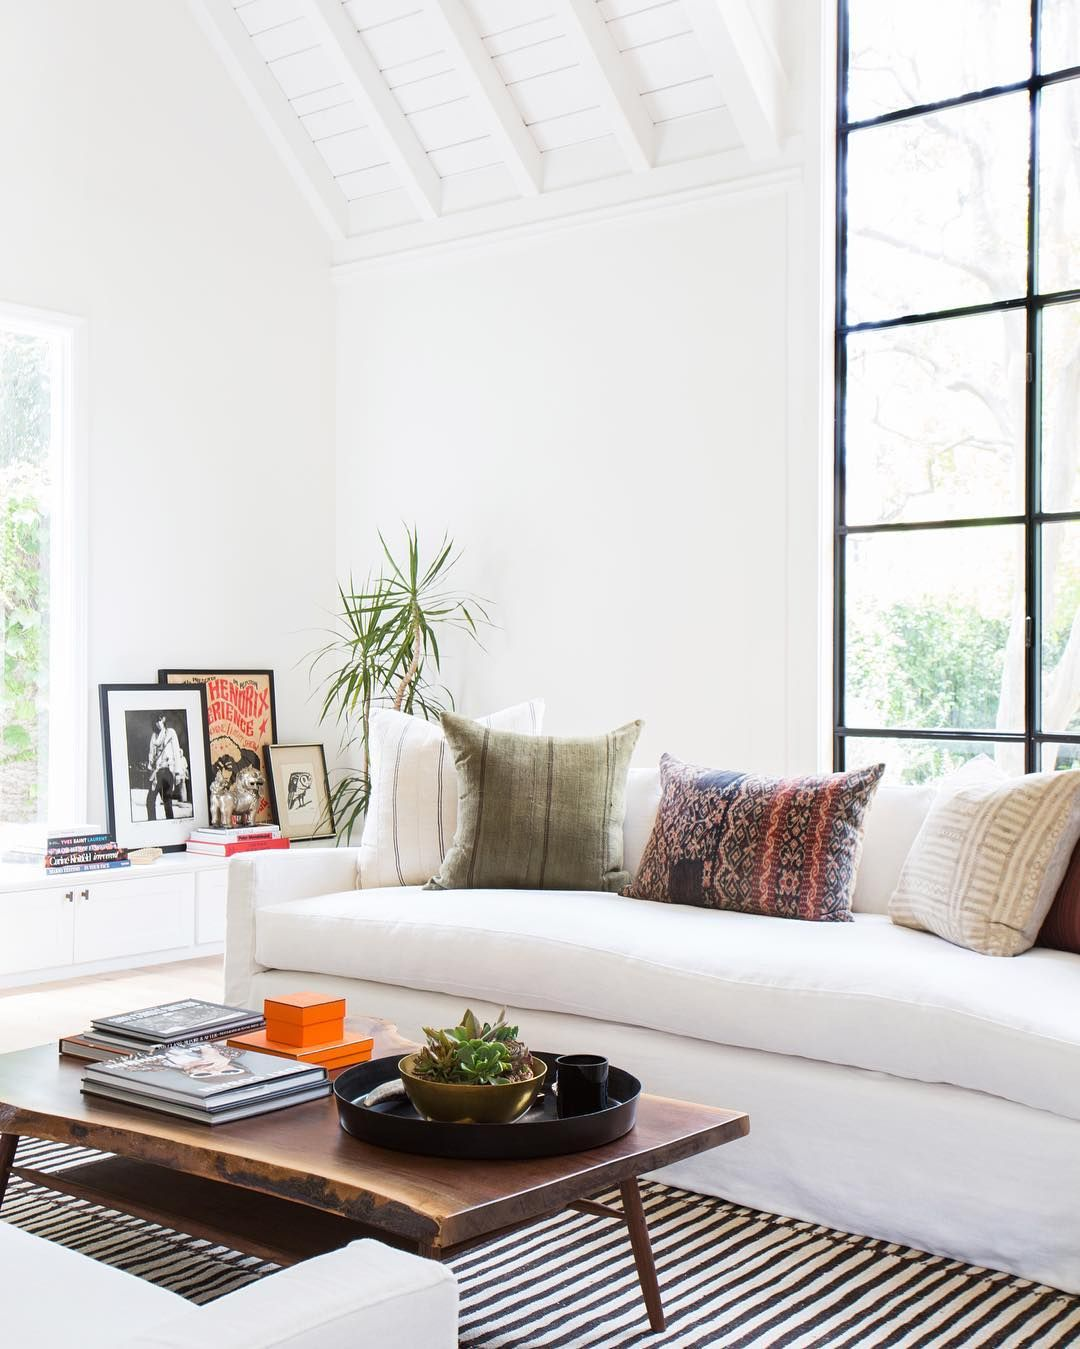 How to Style Your Coffee Table According